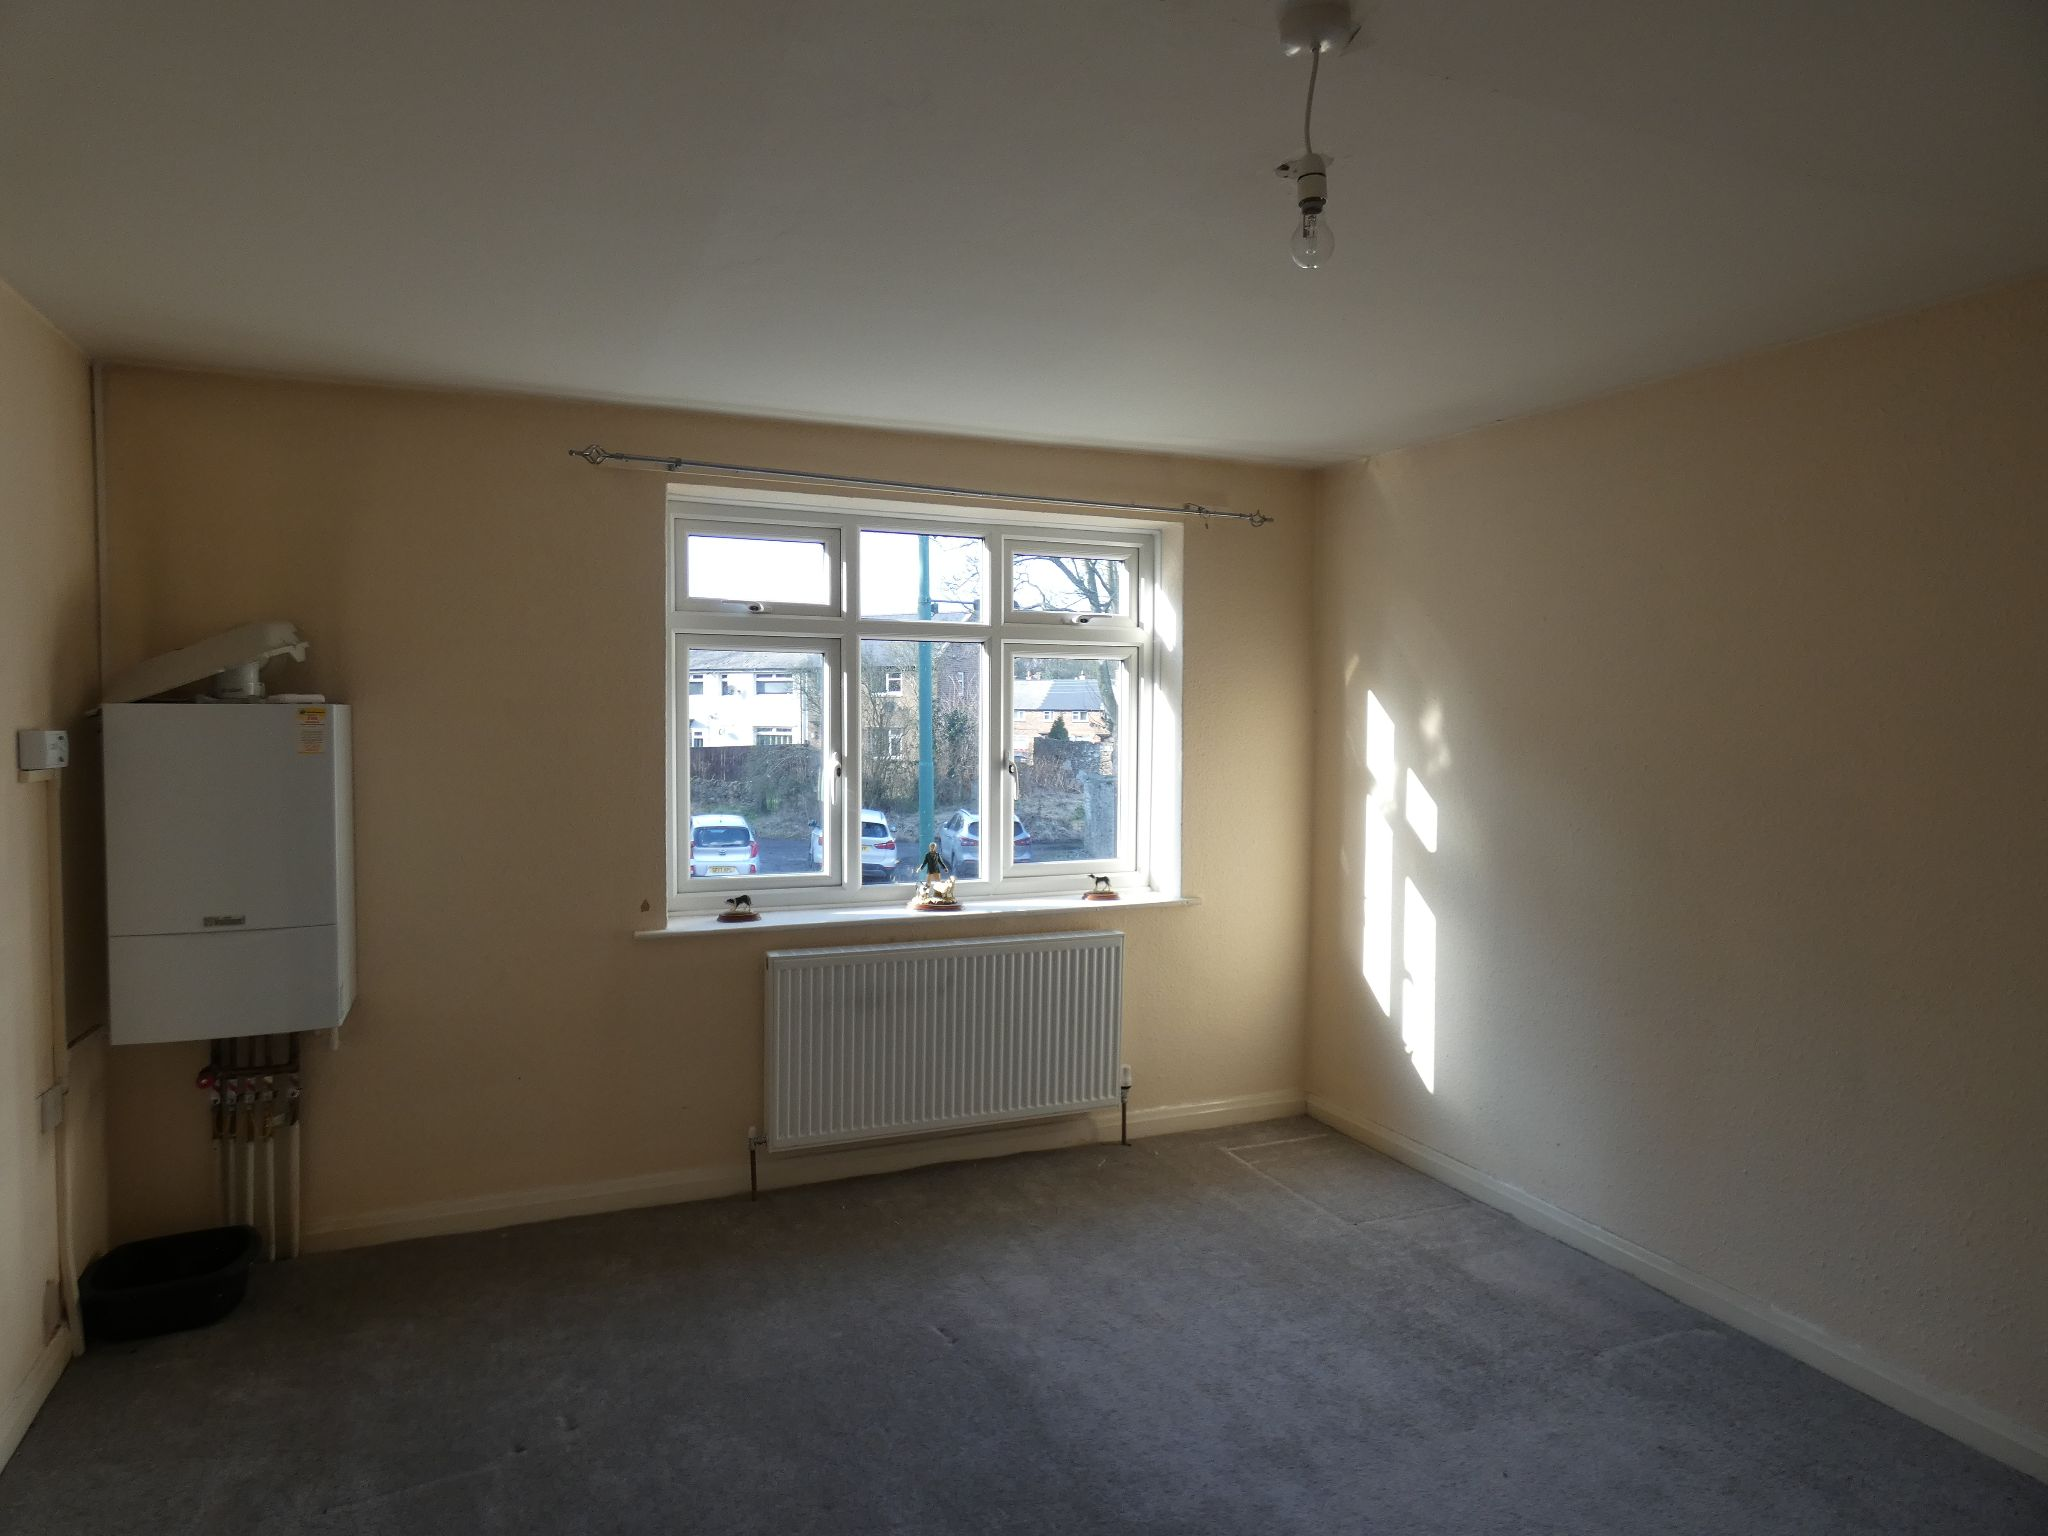 2 bedroom mid terraced house For Sale in Bishop Auckland - Bedroom Two.